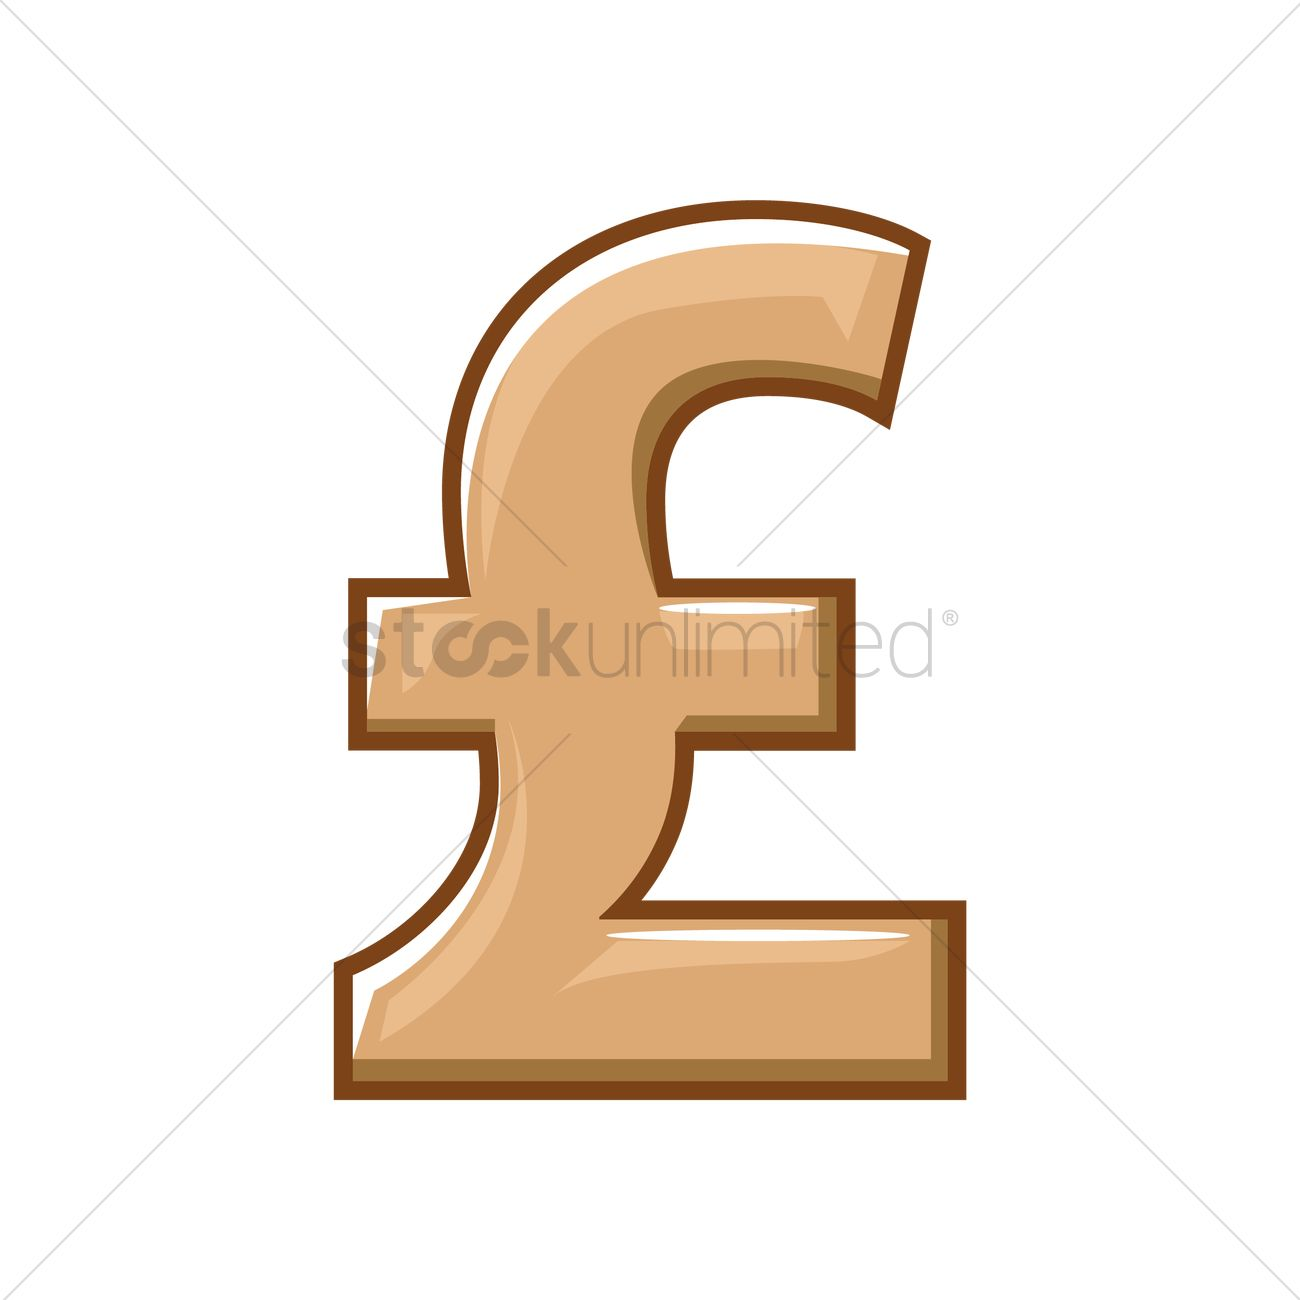 Pound sterling currency symbol vector image 1296366 stockunlimited pound sterling currency symbol vector graphic biocorpaavc Gallery